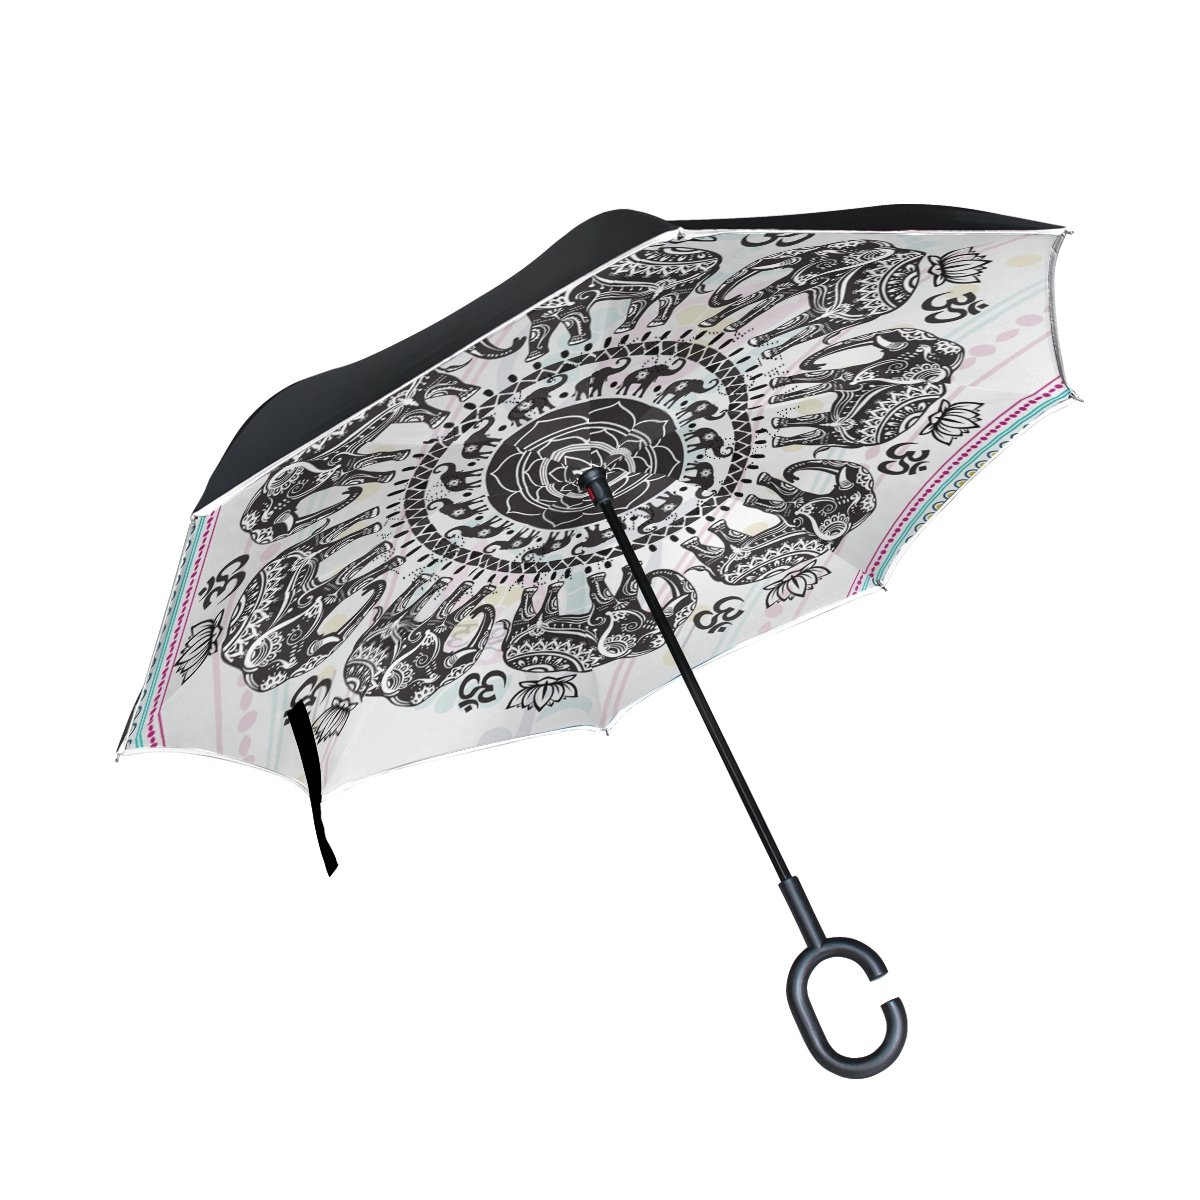 Double Layer Inside Out Folding Umbrella Upside Down Umbrellas with C-Shaped Handle for Women and Men Reverse Inverted Windproof Floral Flower White Roses Umbrella